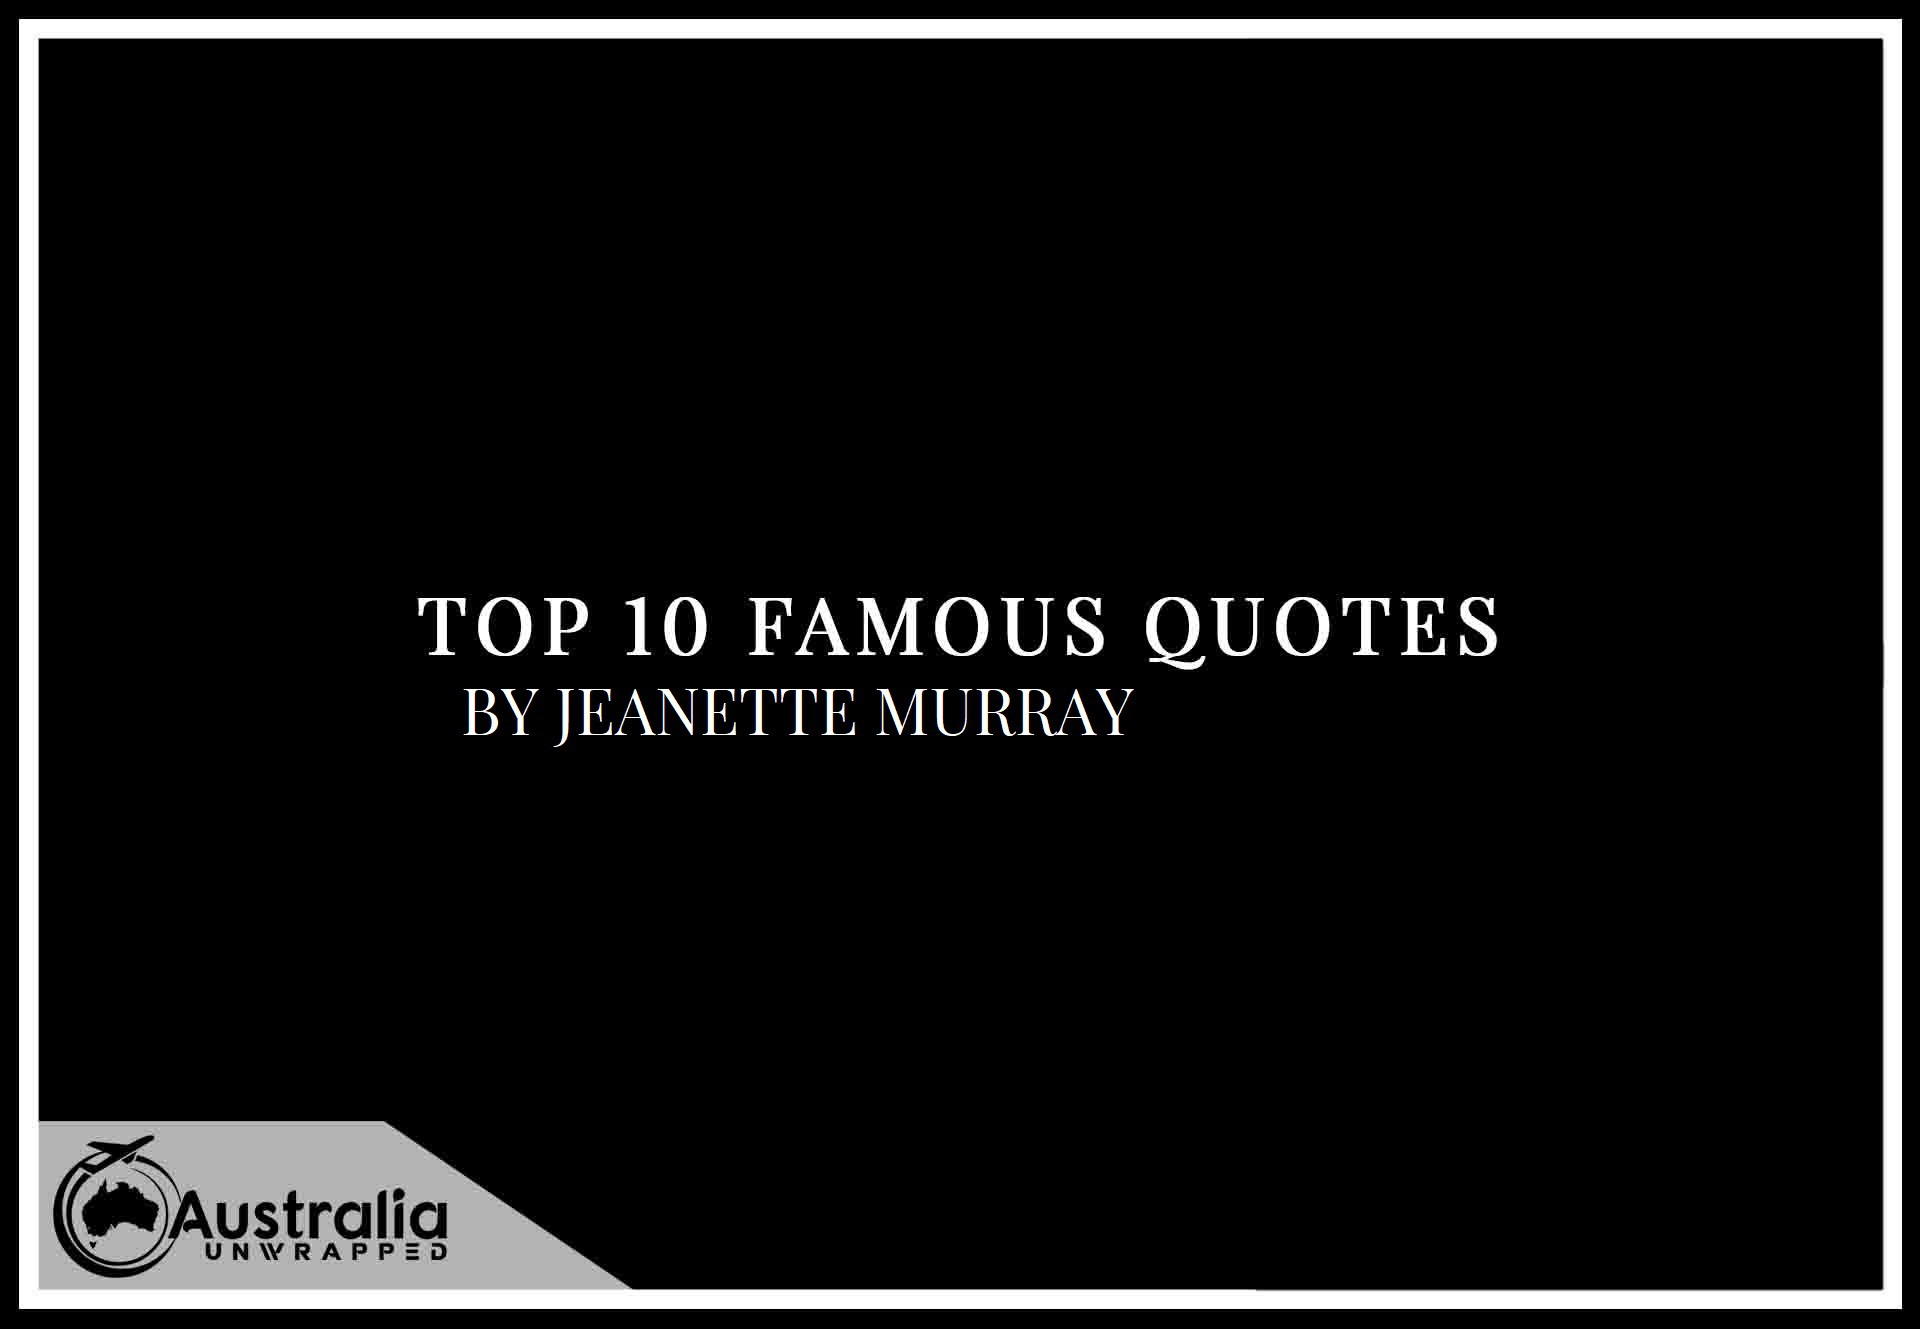 Top 10 Famous Quotes by Author Jeanette Murray